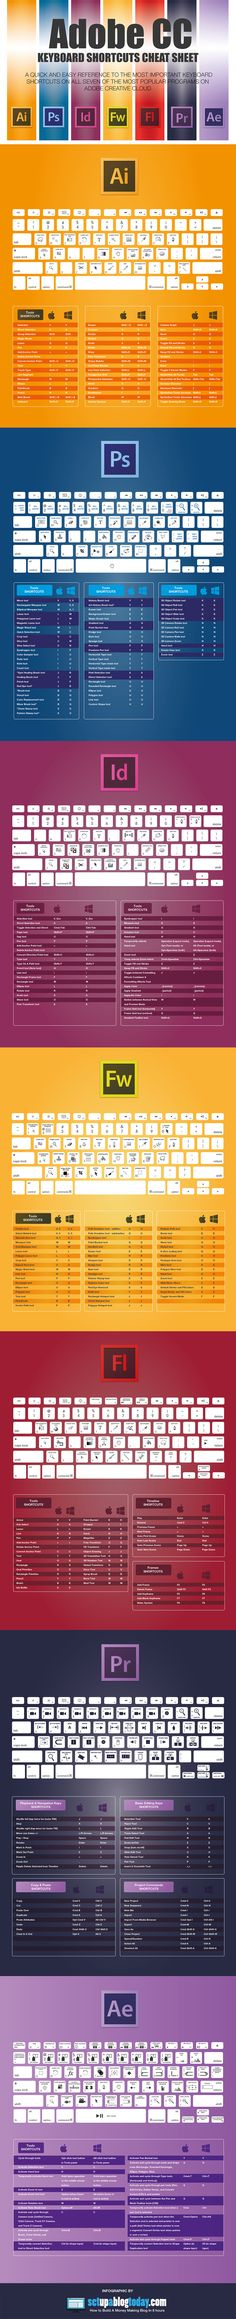 I'm the queen of hot keys - they are super time saving! The Ultimate Adobe Creative Cloud Cheat Sheet for DIY Designers